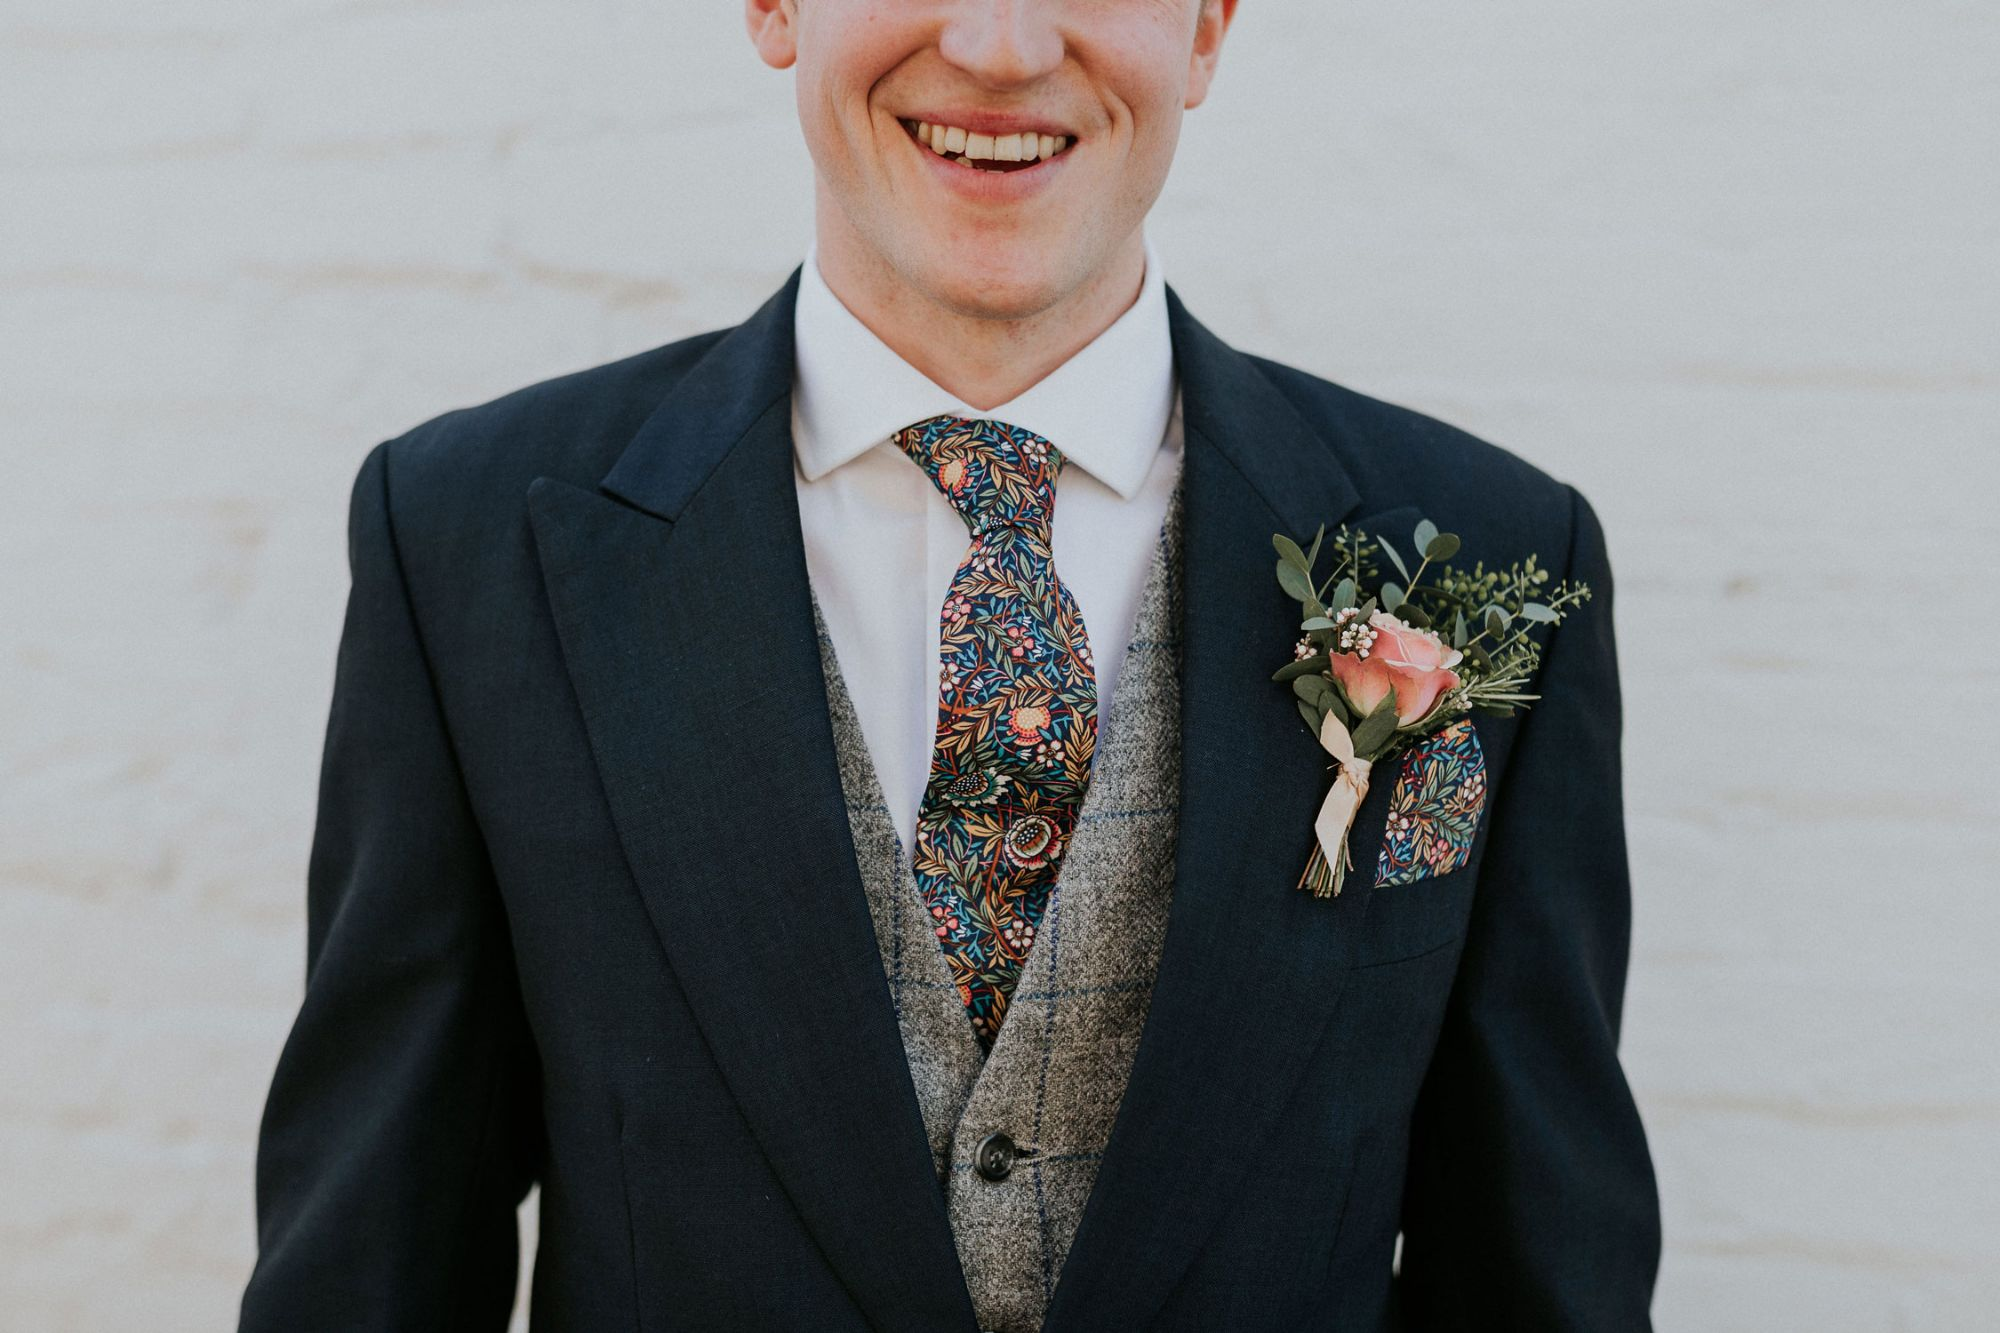 Liberty print wedding tie and matching pocket square